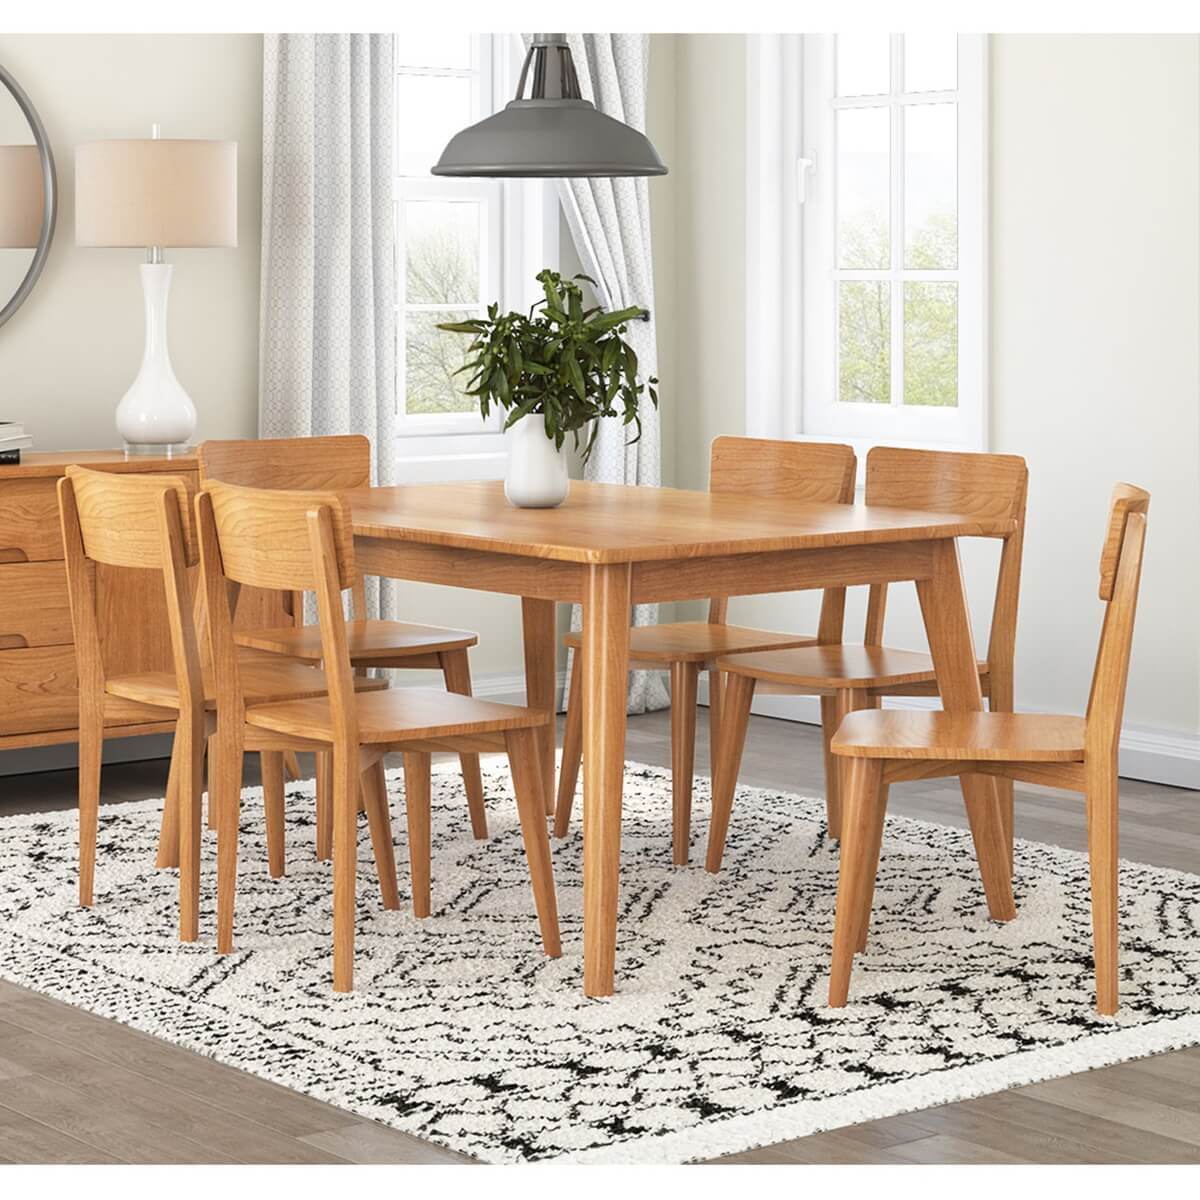 Avondale Teak Wood Modern Style Dining Room Table with 6 Chair Set